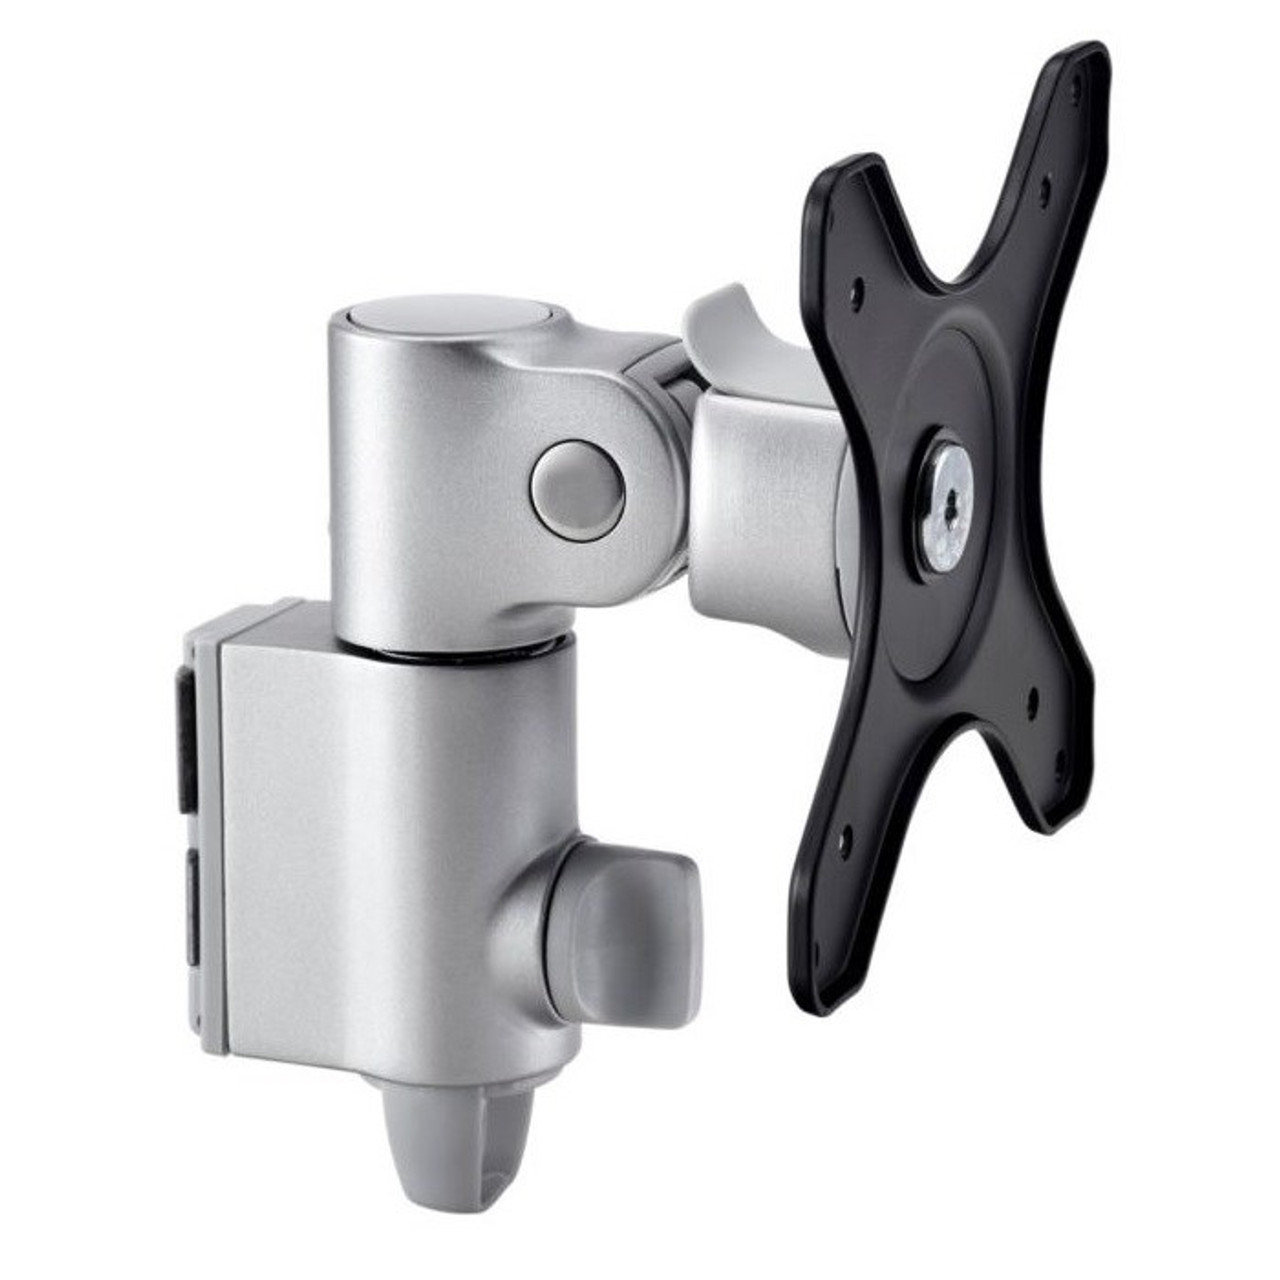 Image for Atdec AWM-A13 130mm Monitor Arm Black - Silver CX Computer Superstore